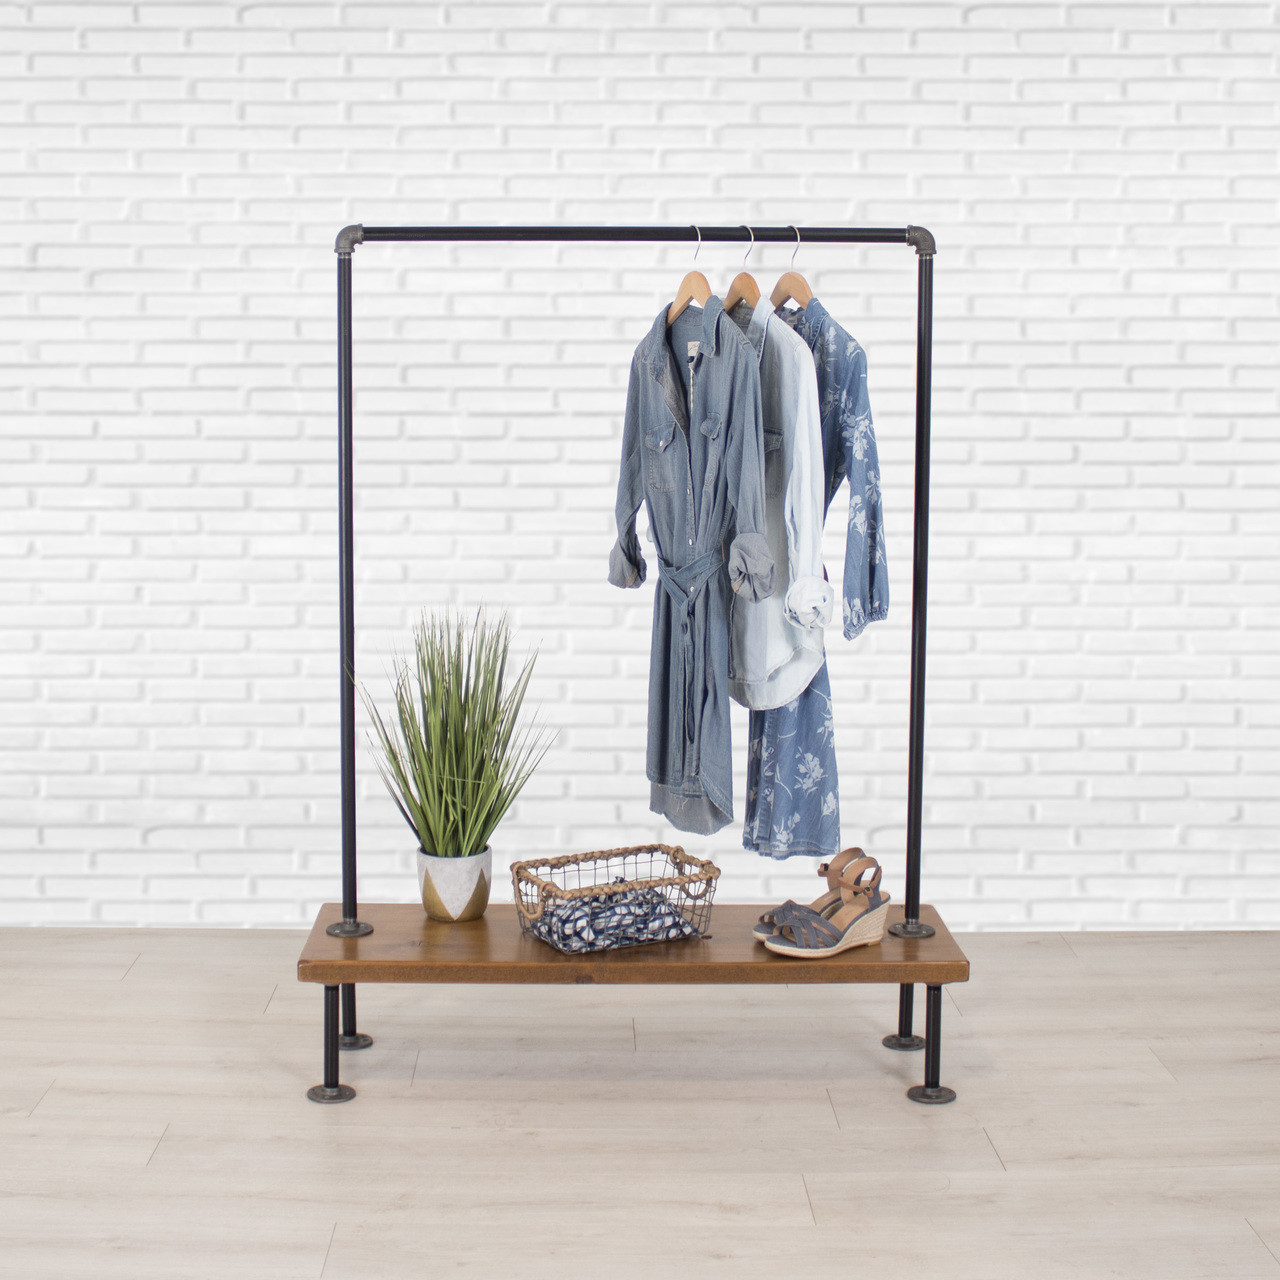 Large Wall Rack by William Roberts Vintage Industrial Pipe Clothing Rack